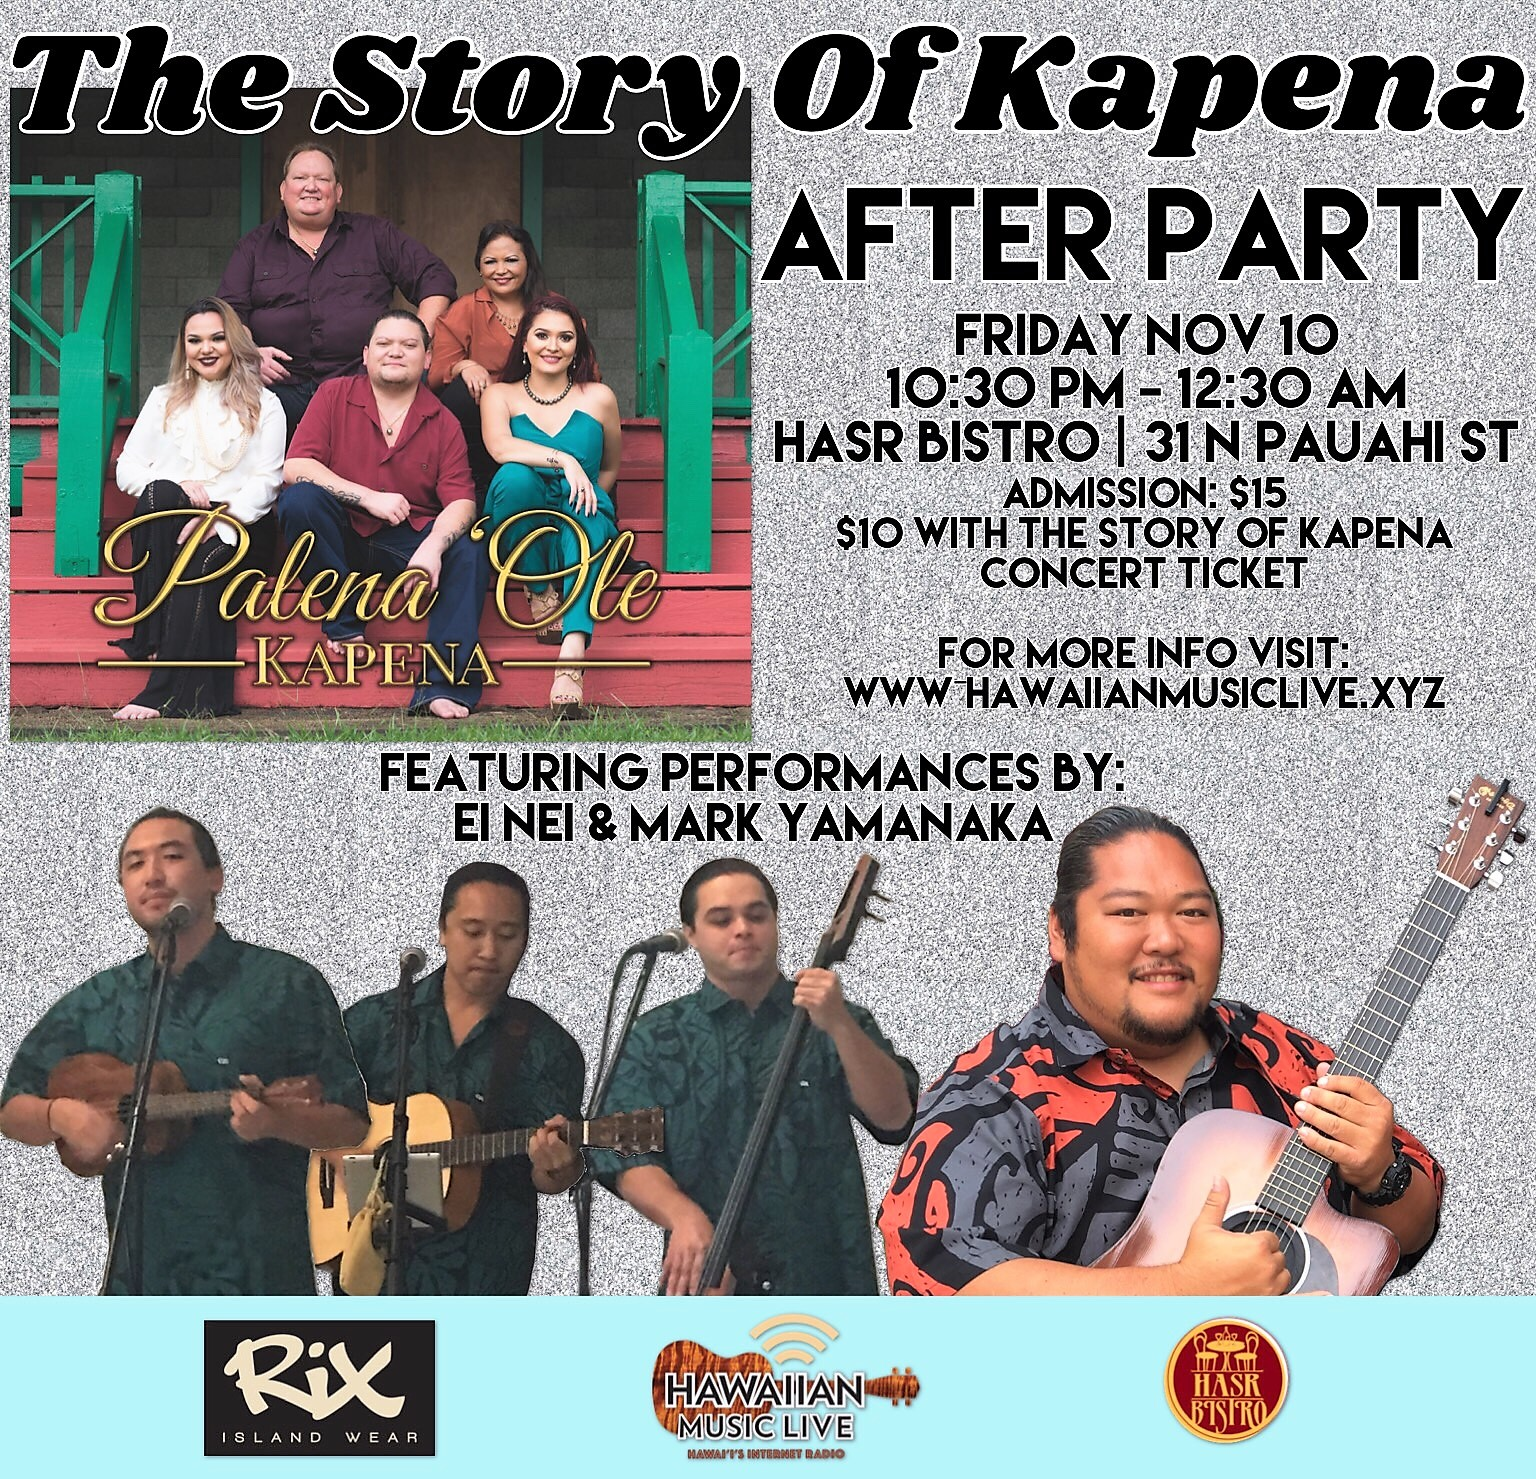 kapena after party.jpg